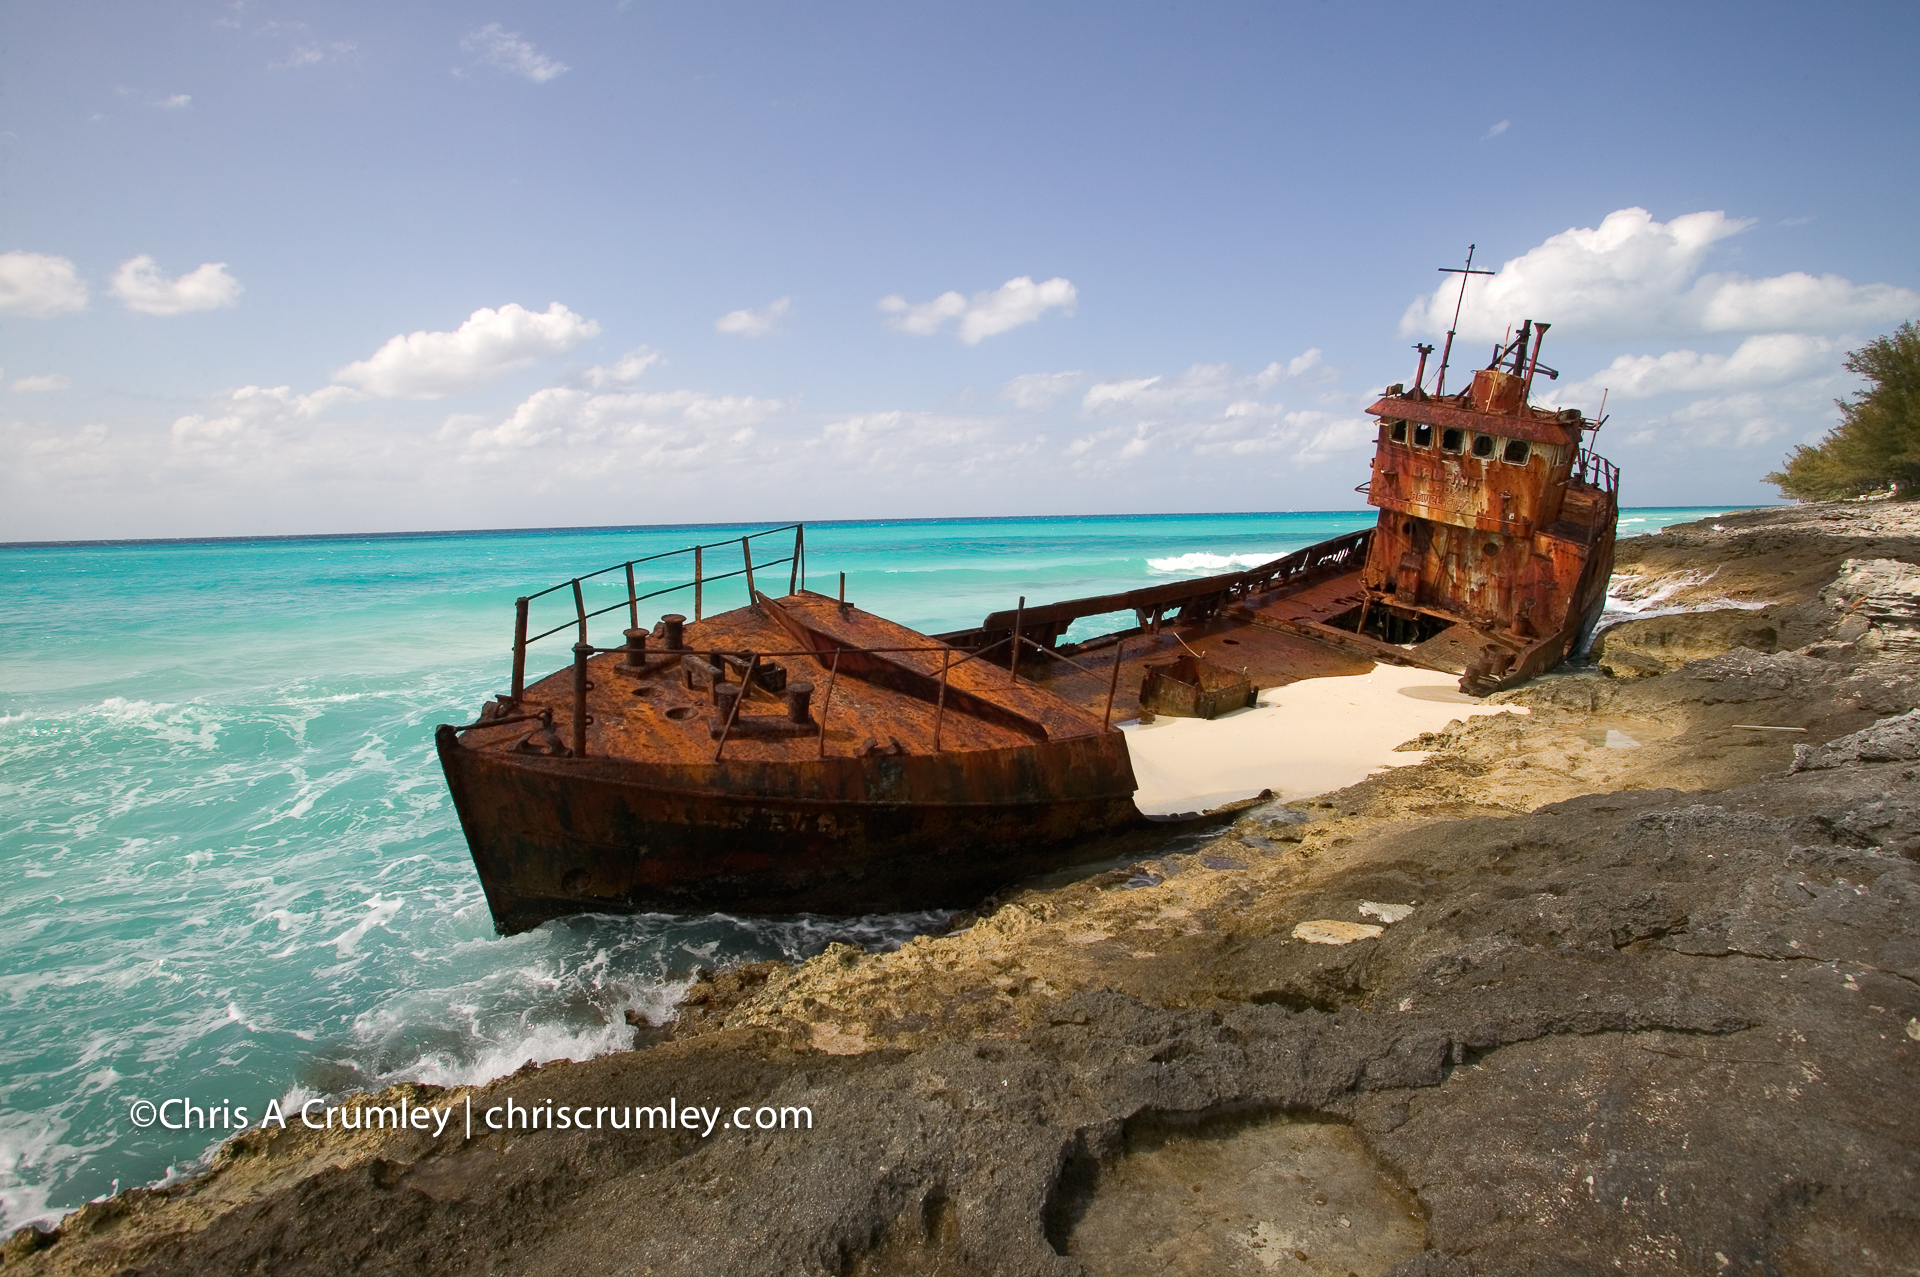 Bimini Shipwreck - The Galant Lady, Belize